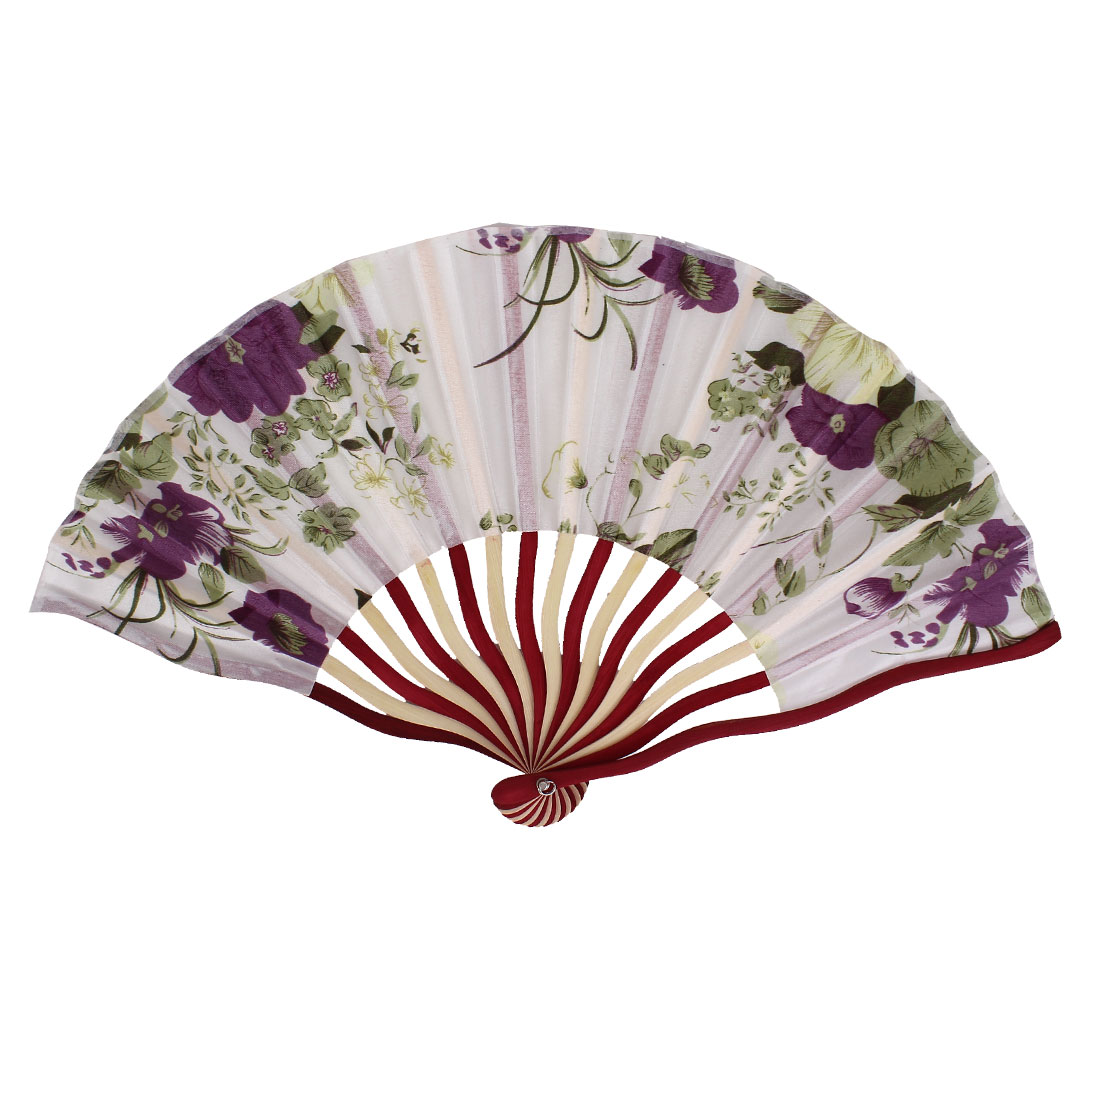 Chinese Tradition Blooming Peony Flower Print Ivory Red Bamboo Frame White Fabric Cloth Handheld Collapsible Hand Fan